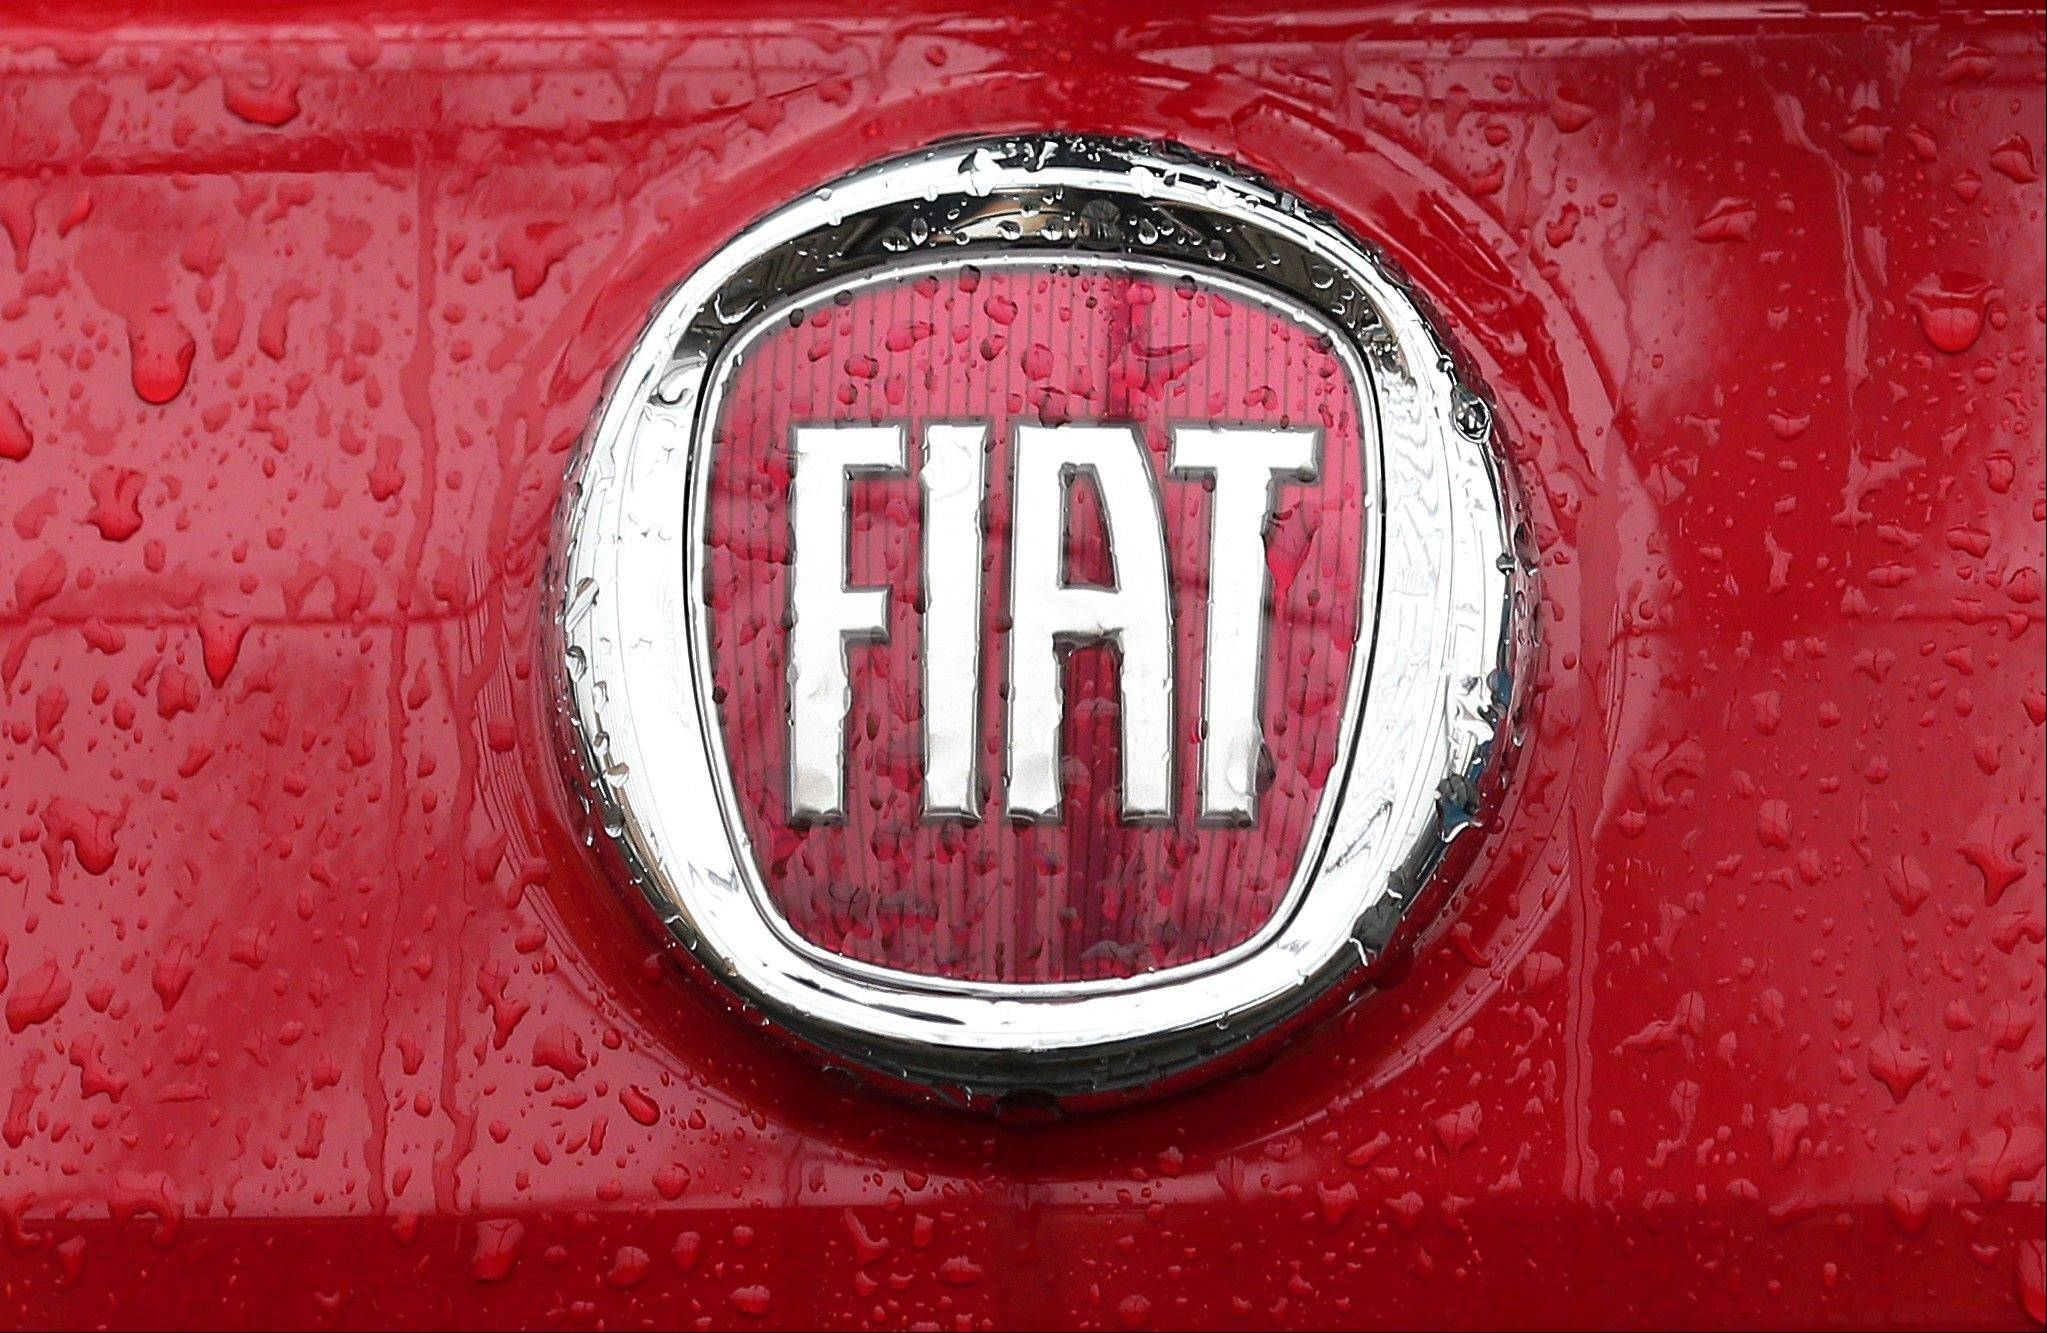 The price of Fiat shares is soaring after the Italian automaker announced it had clinched a deal to acquire the rest of Chrysler, with no plans for a capital increase.